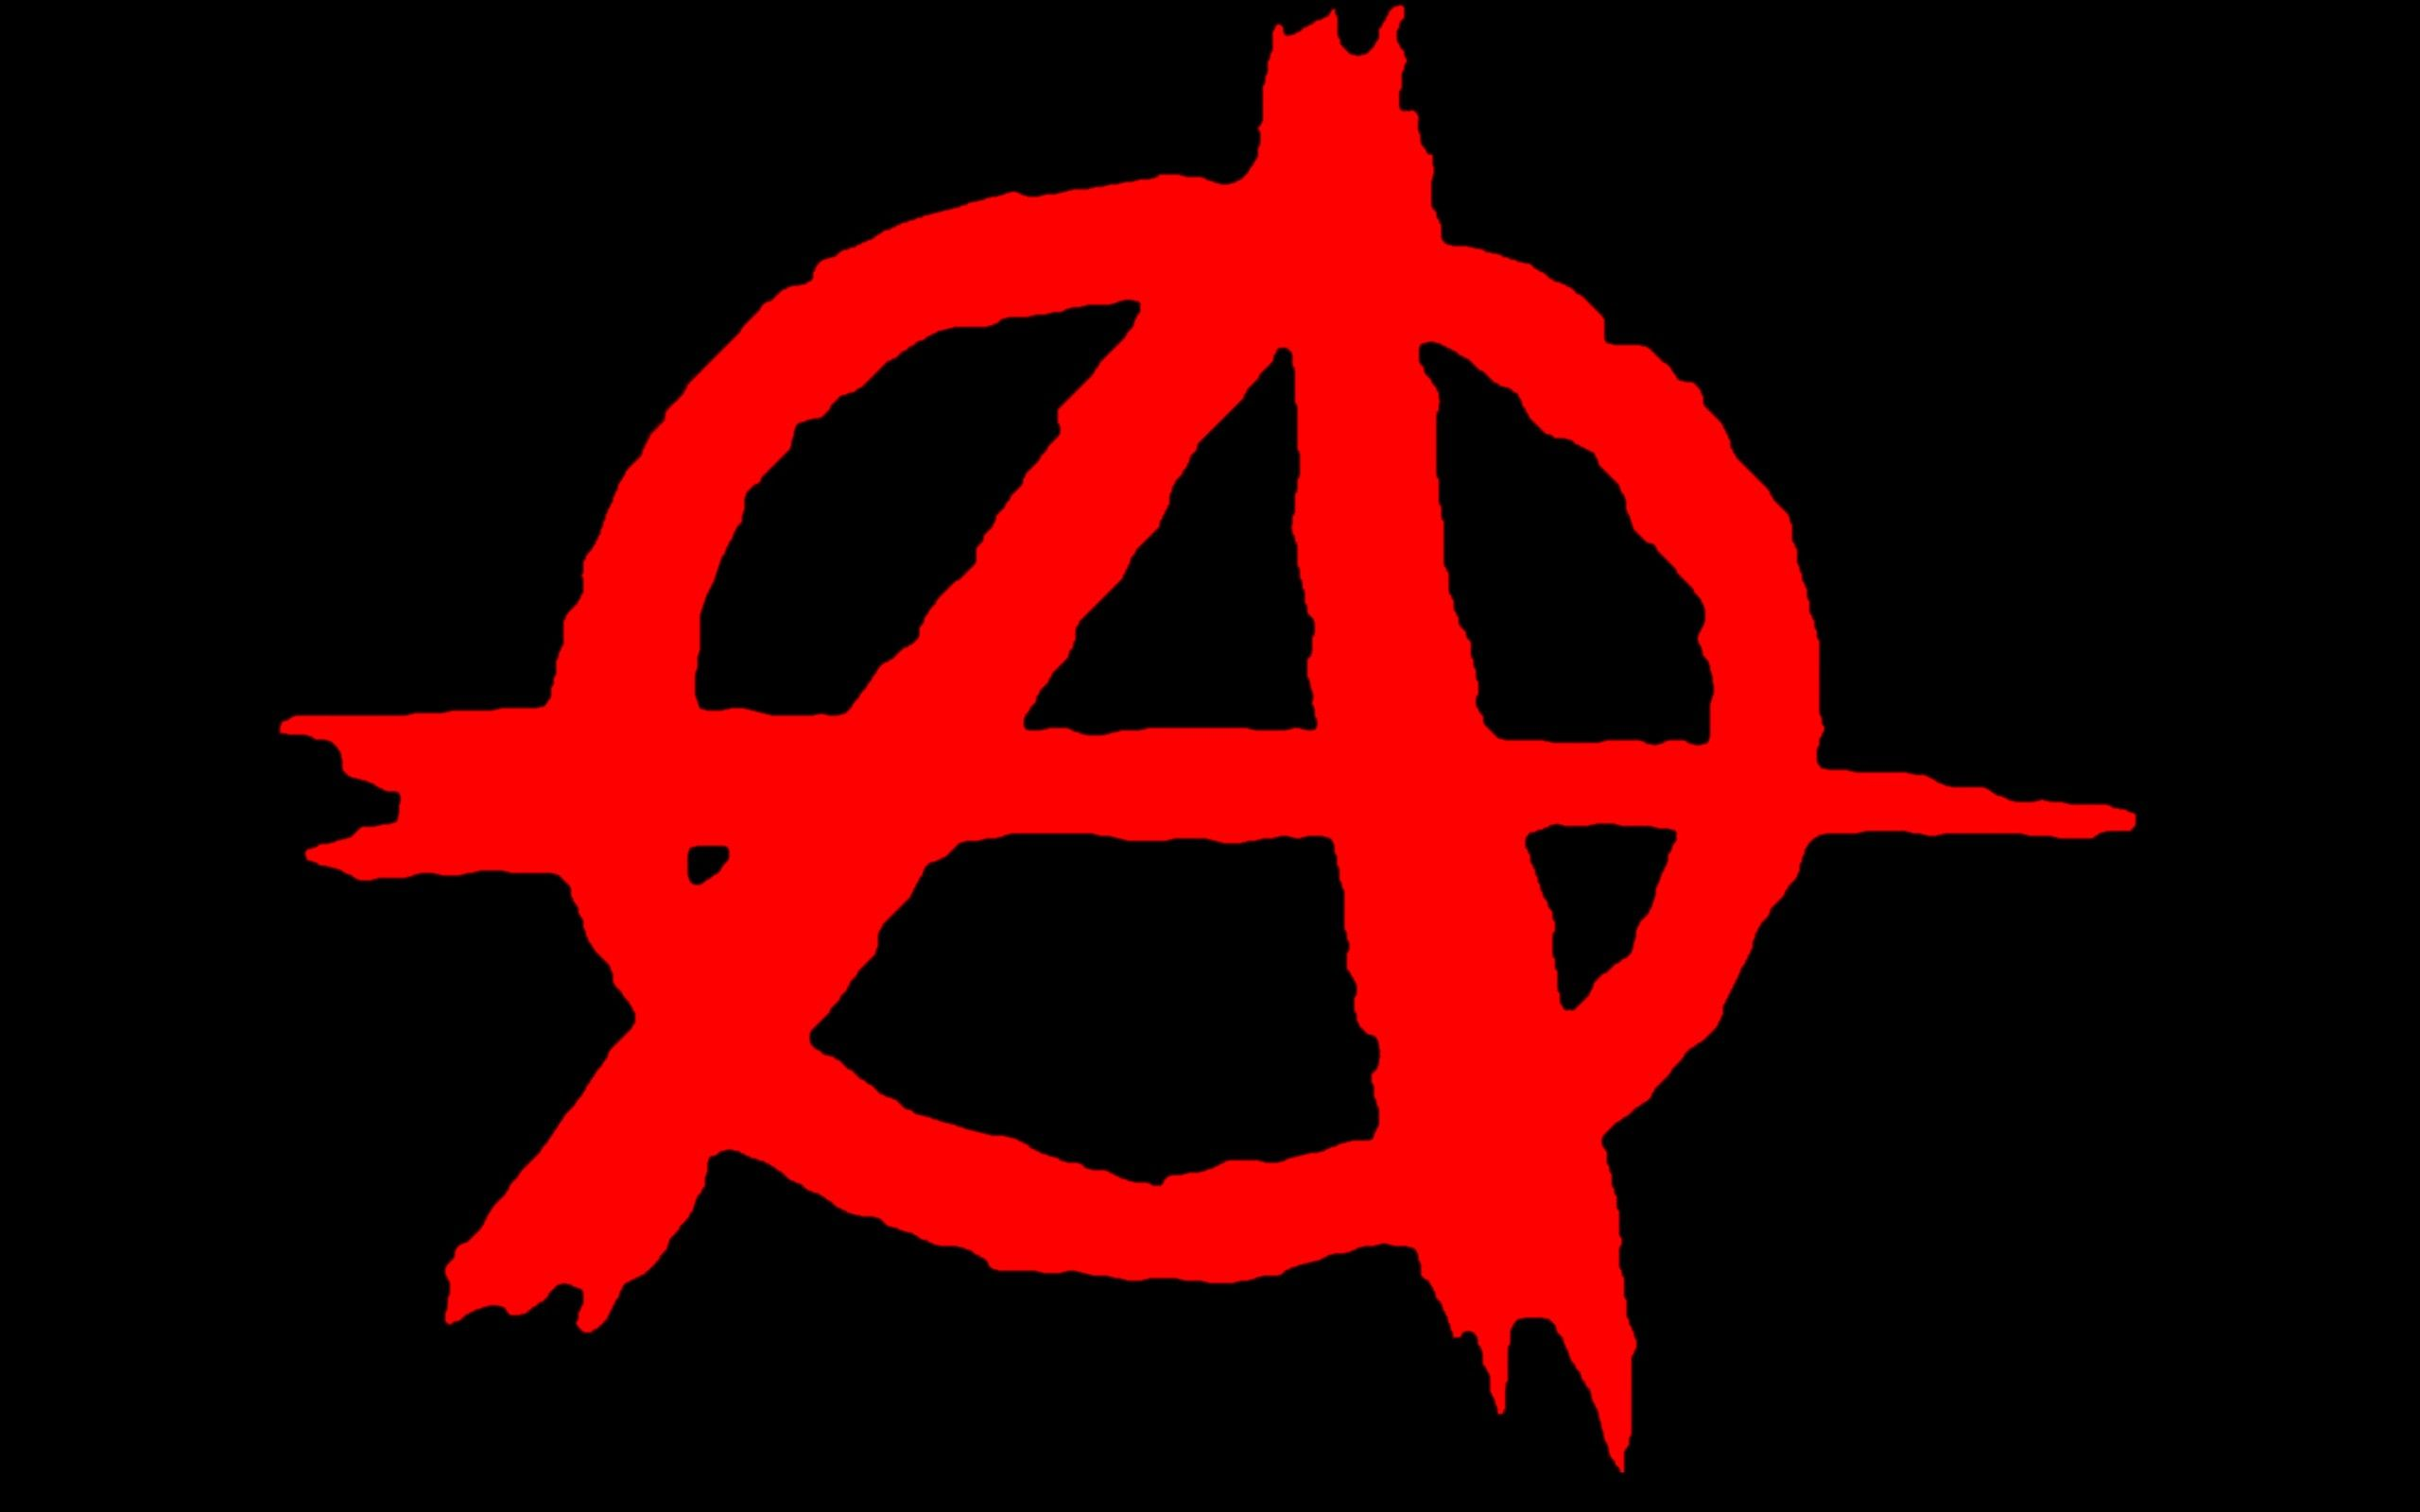 Sons of Anarchy Symbol signs symbol peace anarchy